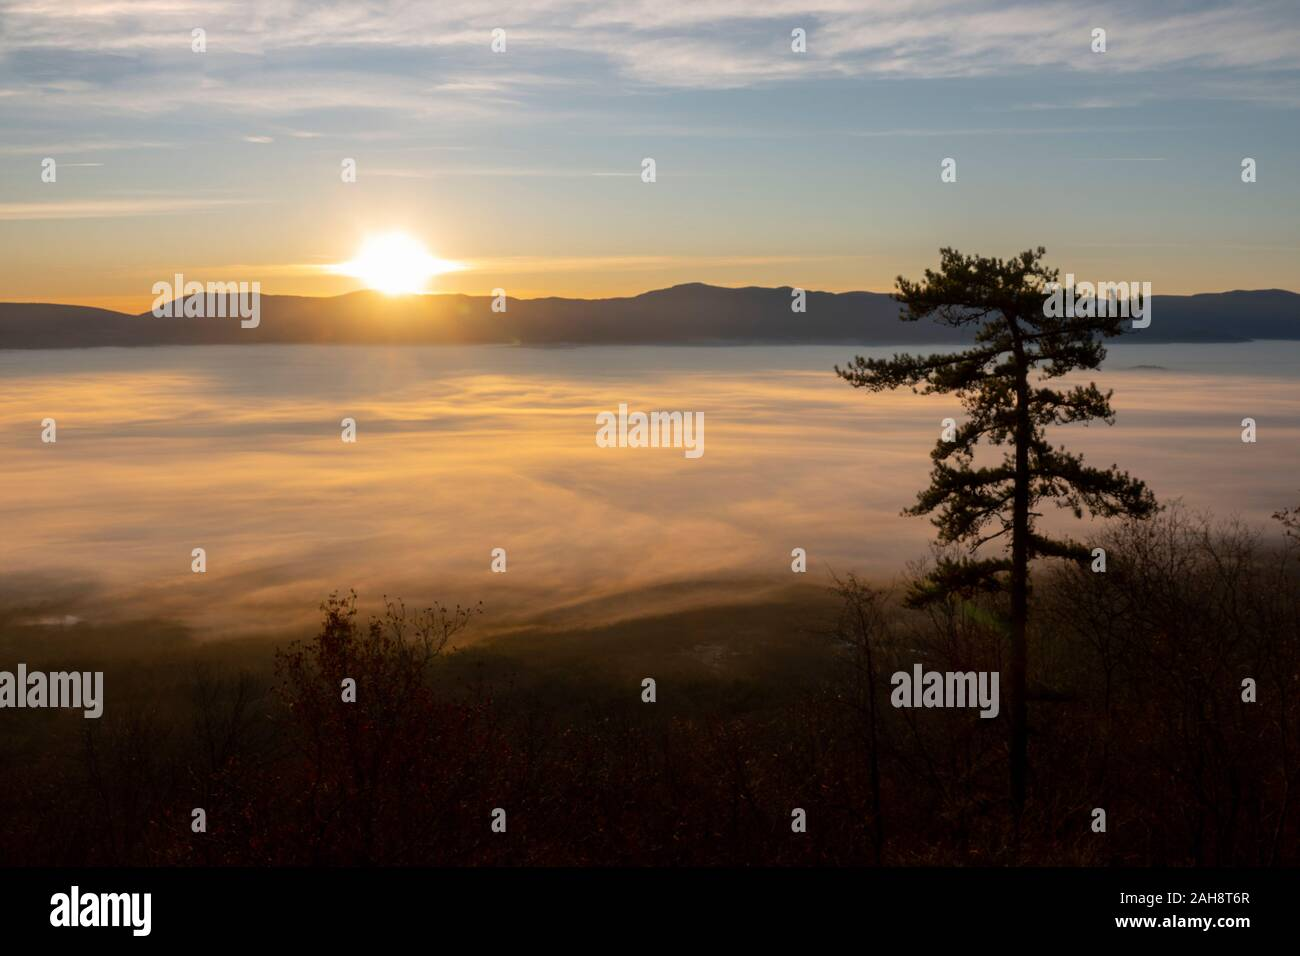 usa-virginia-va-luray-shenandoah-river-valley-ground-fog-covers-the-valley-page-county-sunrise-2AH8T6R.jpg